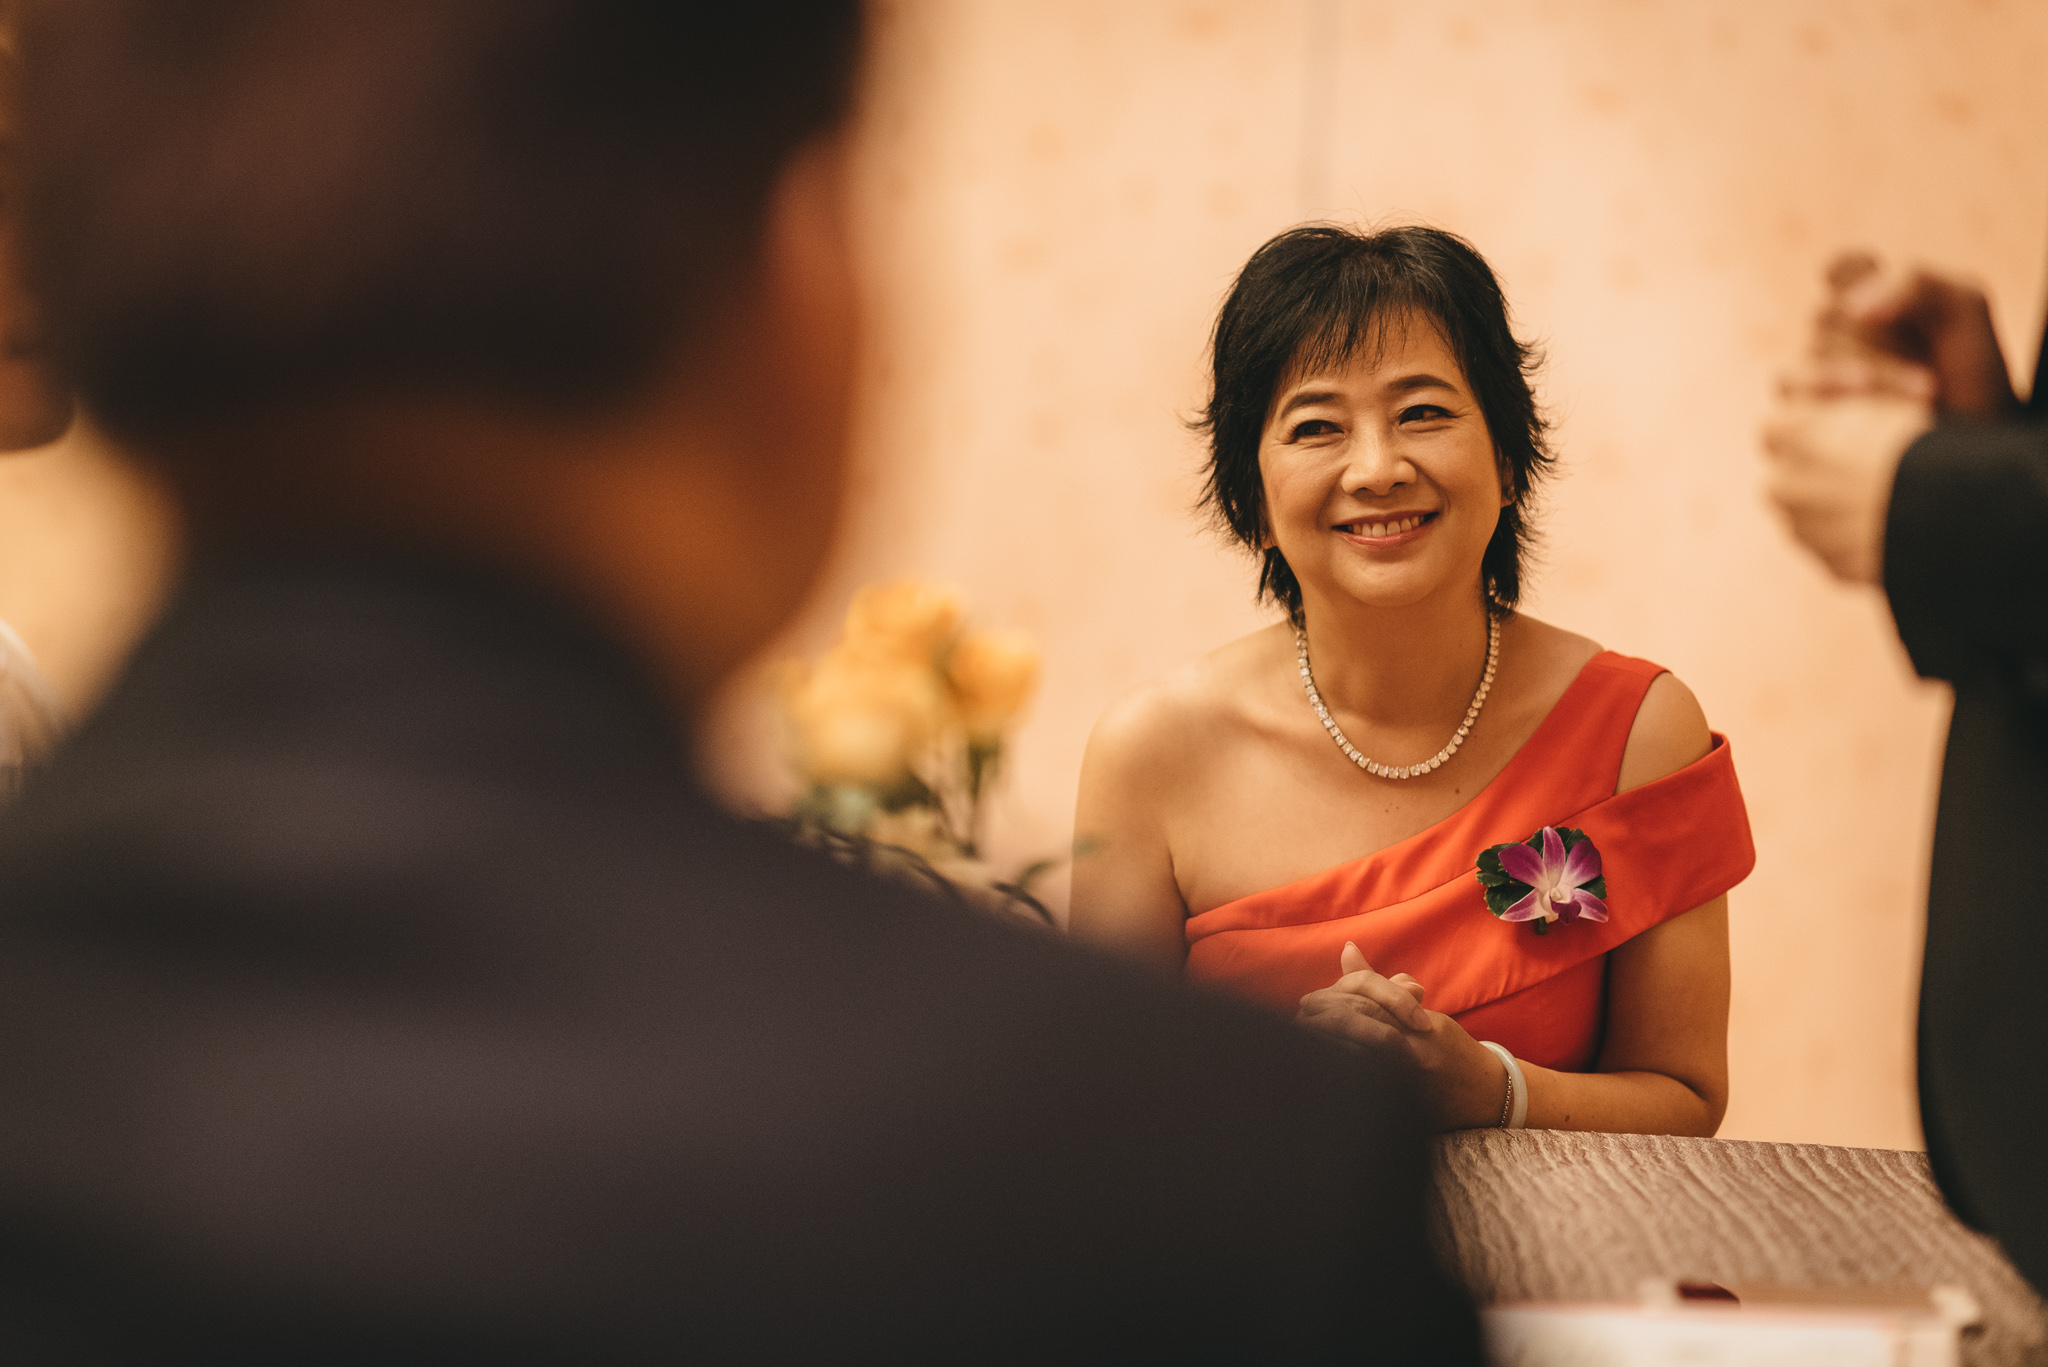 Fiona & Terence Wedding Day Highlights (resized for sharing) - 174.jpg